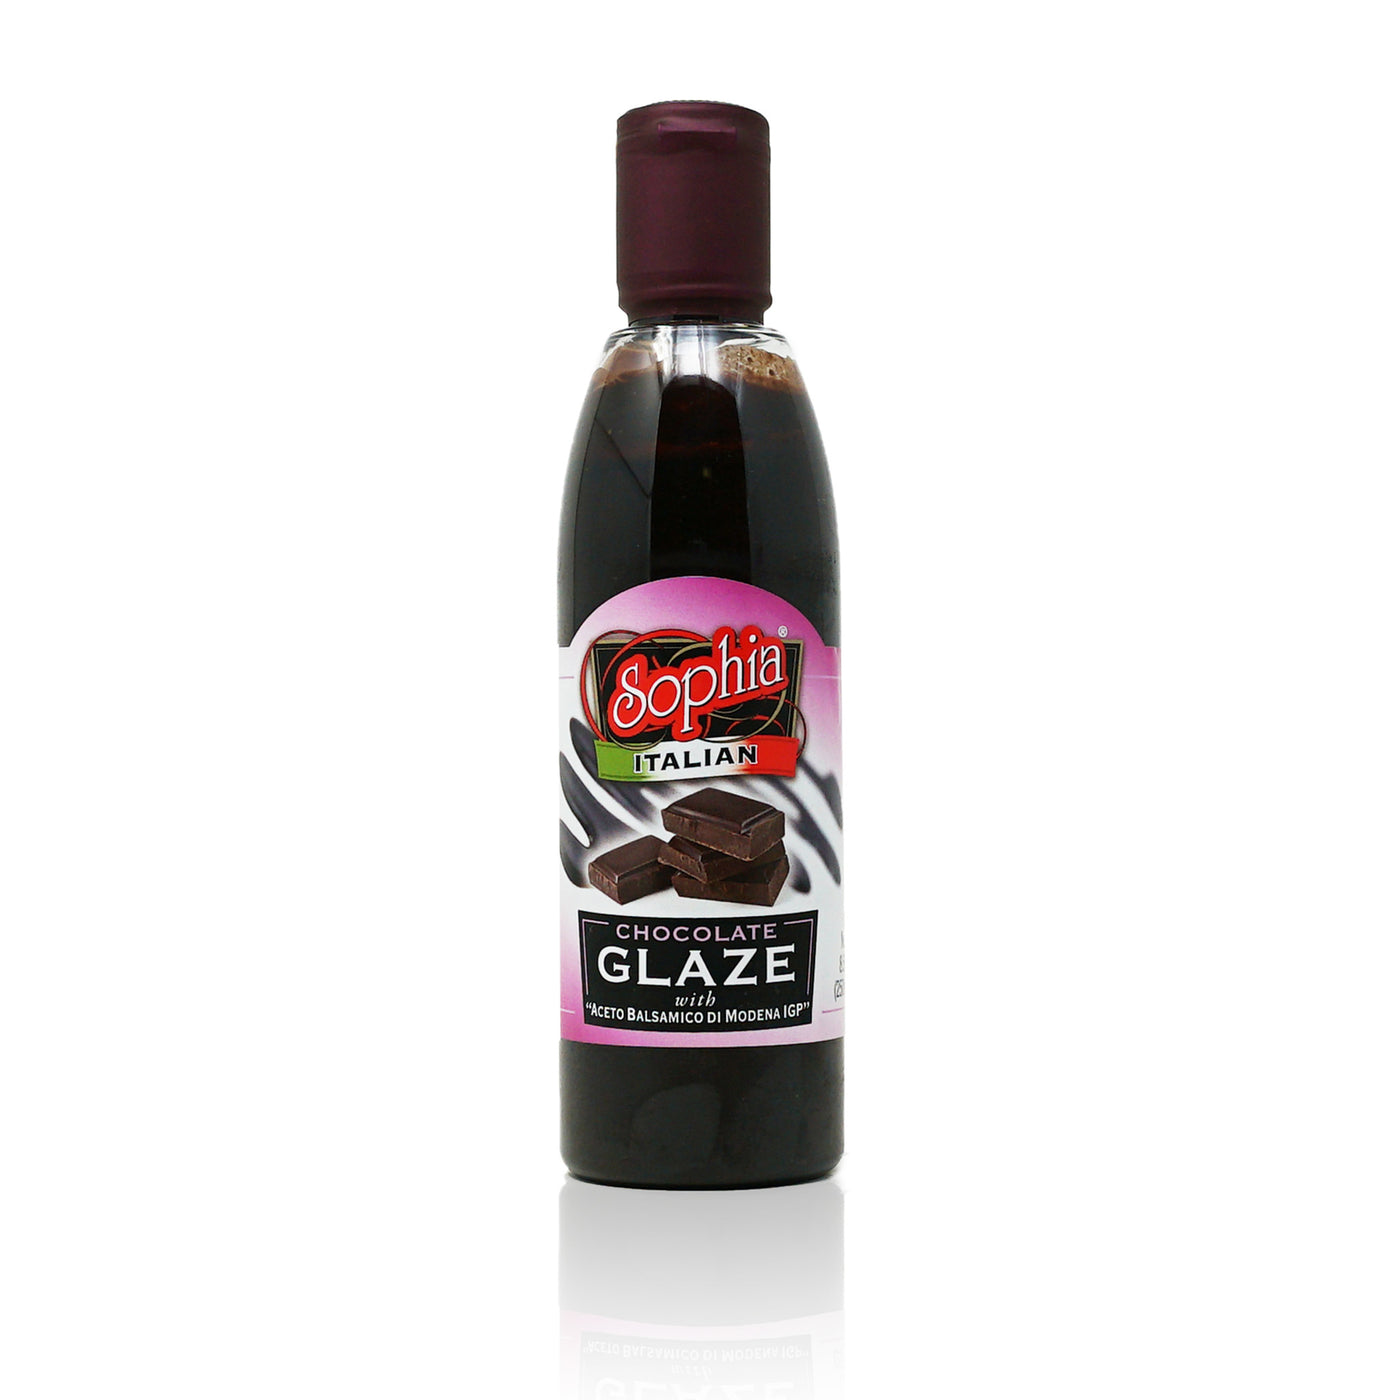 Sophia Balsamic Glaze - Chocolate